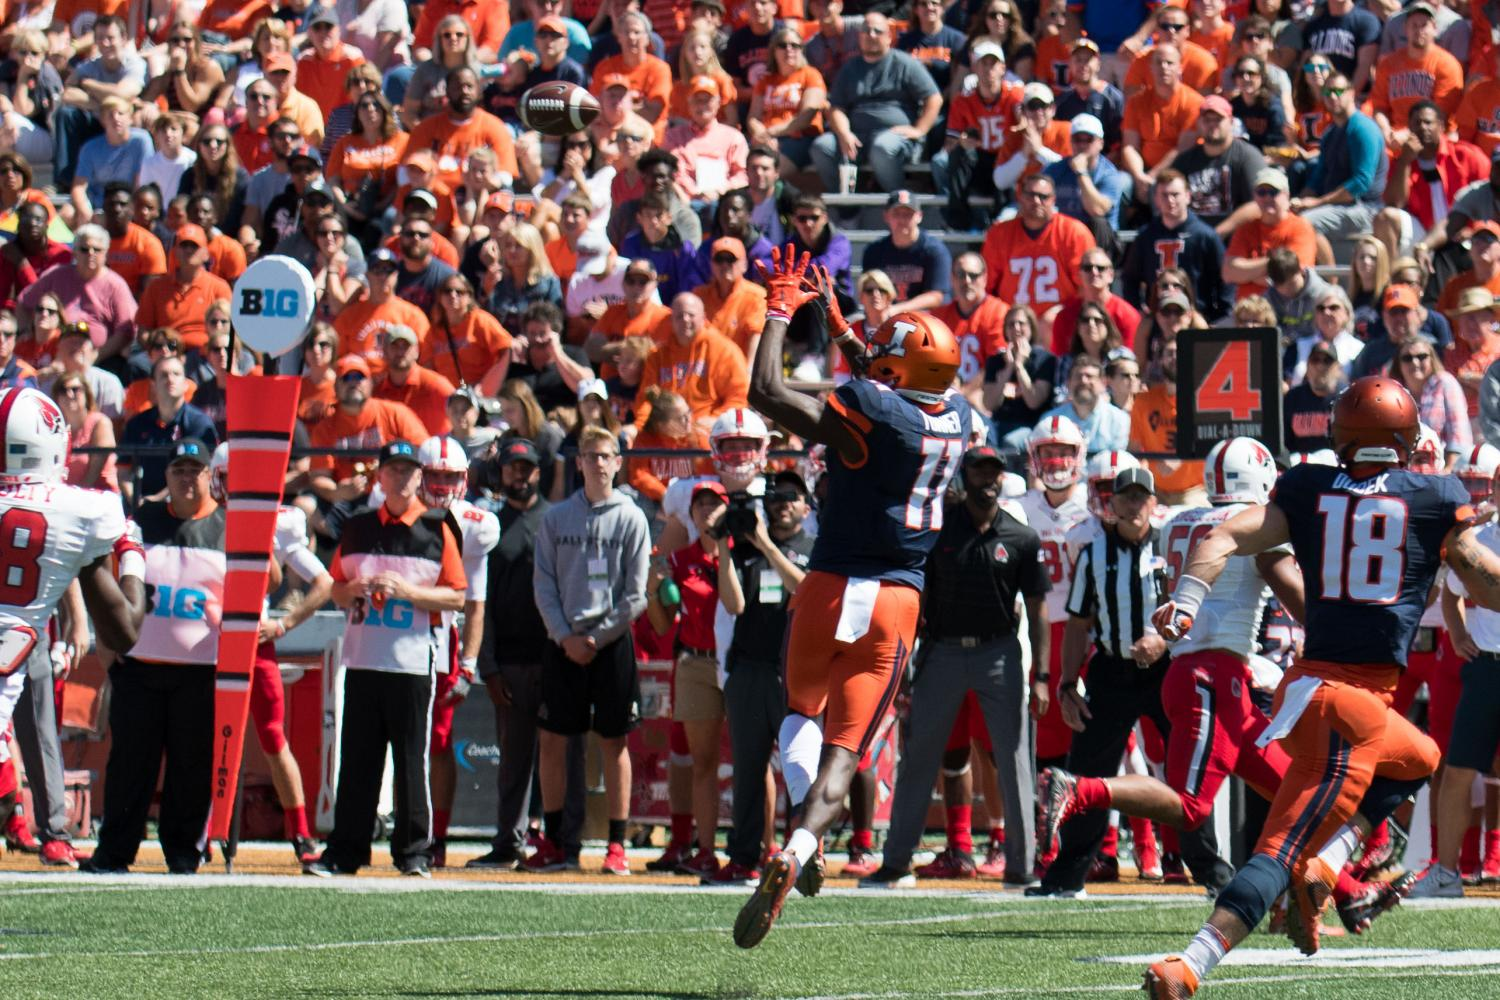 Illinois wide receiver Malik Turner jumps to catch a pass for a successful fourth down conversion during the team's close victory against Ball State on Saturday. The Illini won 24-21.